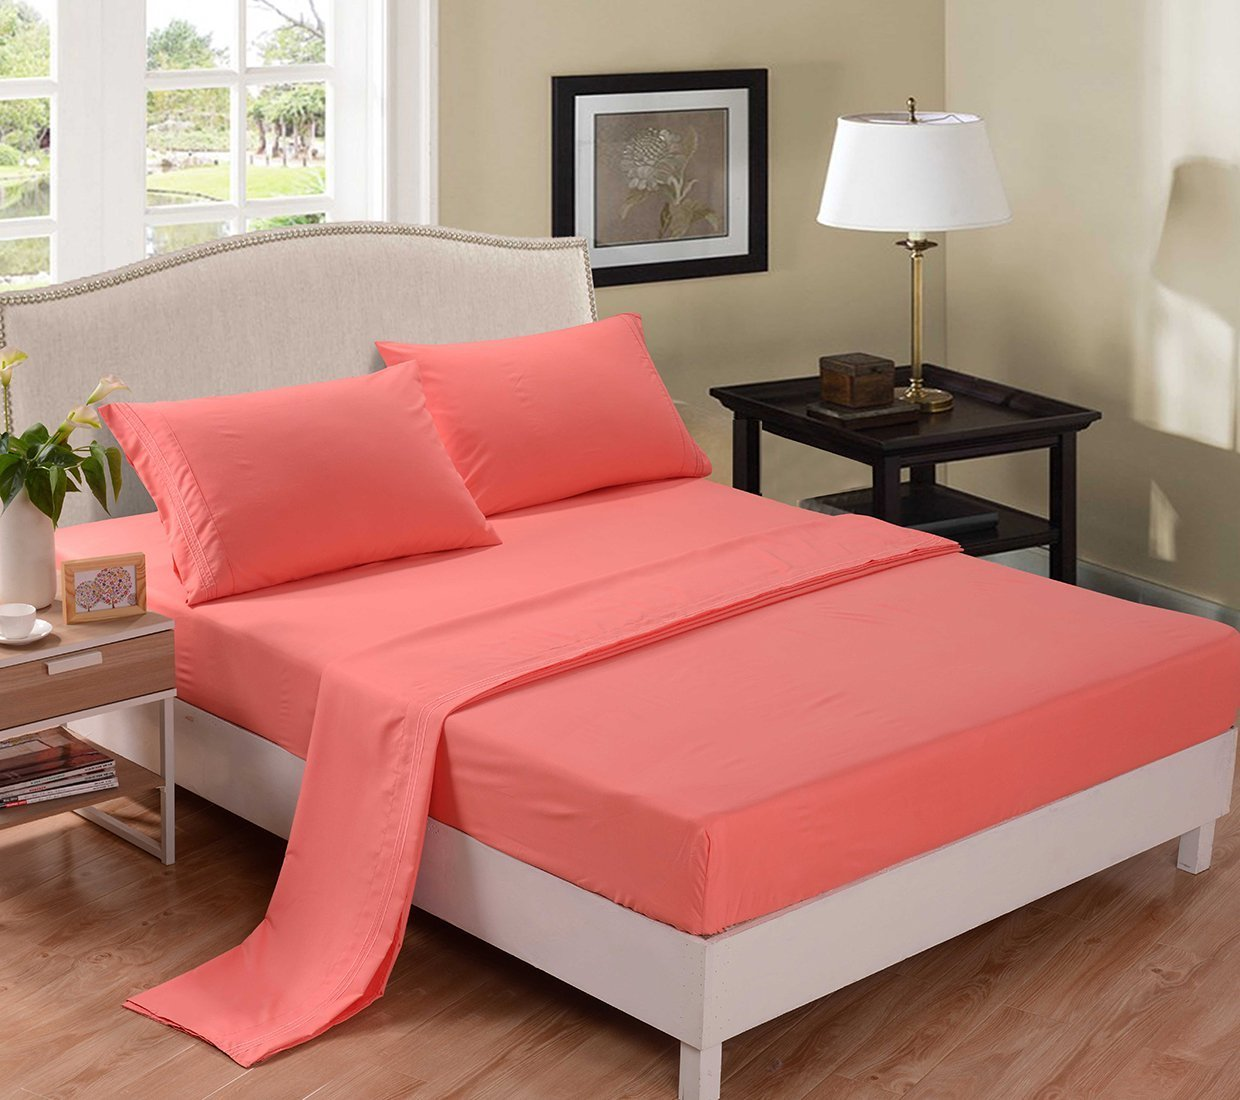 4PC Bedding Sheet Set, Sheet & Pillowcase Sets - Queen, Coral